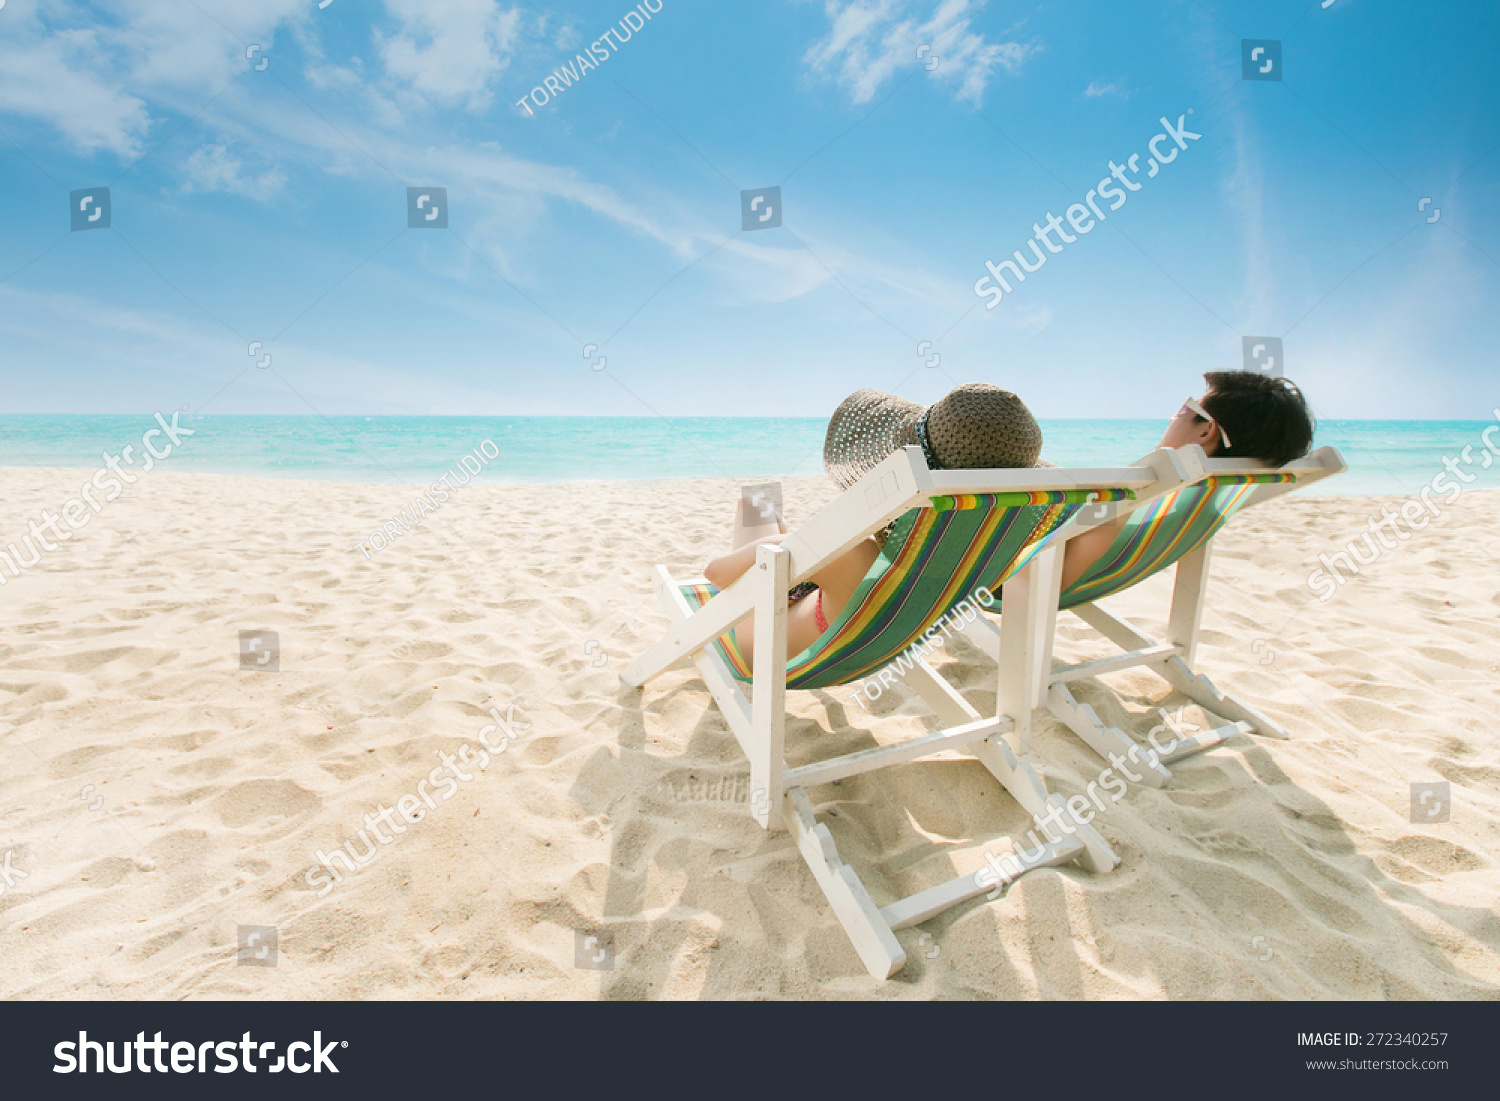 Sunbathing Chairs Couple Sunbathing On Beach Chair Beach Stock Photo